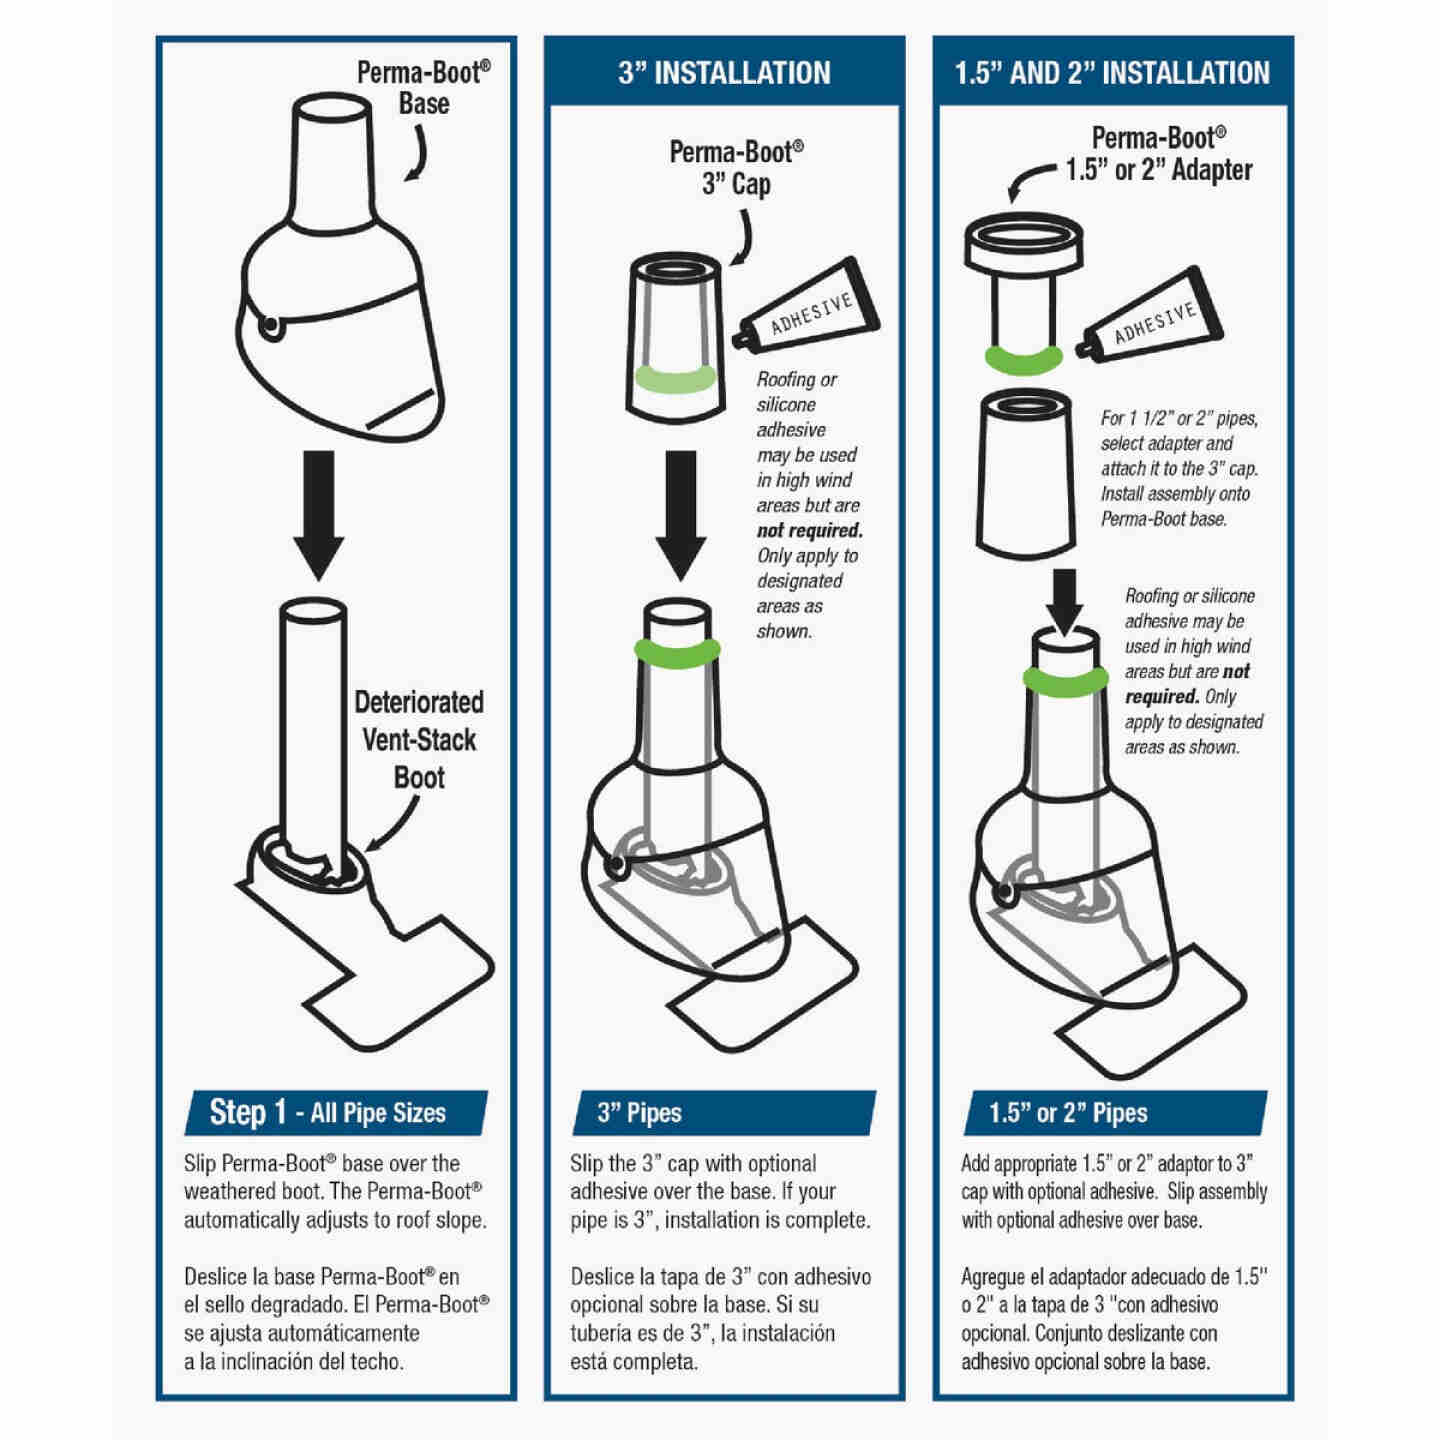 Perma-Boot TPO Plastic 3in1 Roof Pipe Flashing, fits 1-1/2 In., 2 In. & 3 In. Pipes Image 3